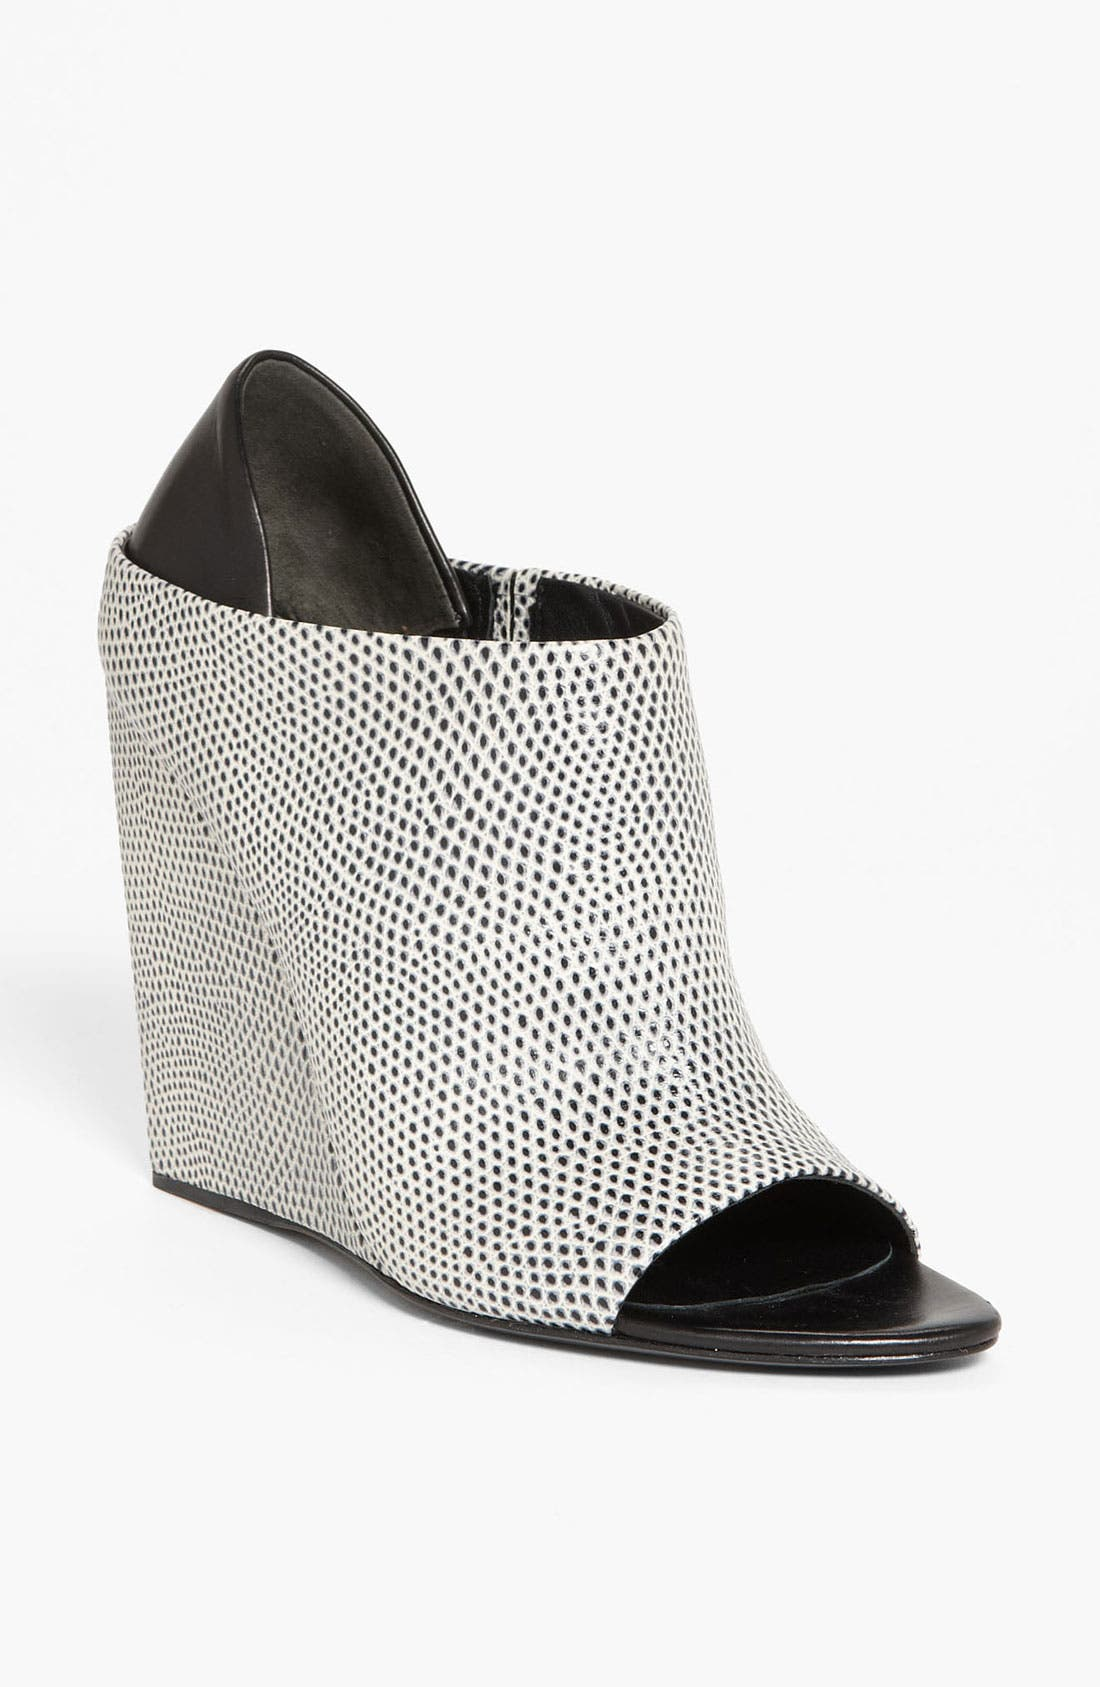 Alternate Image 1 Selected - Alexander Wang 'Alla' Wedge Bootie